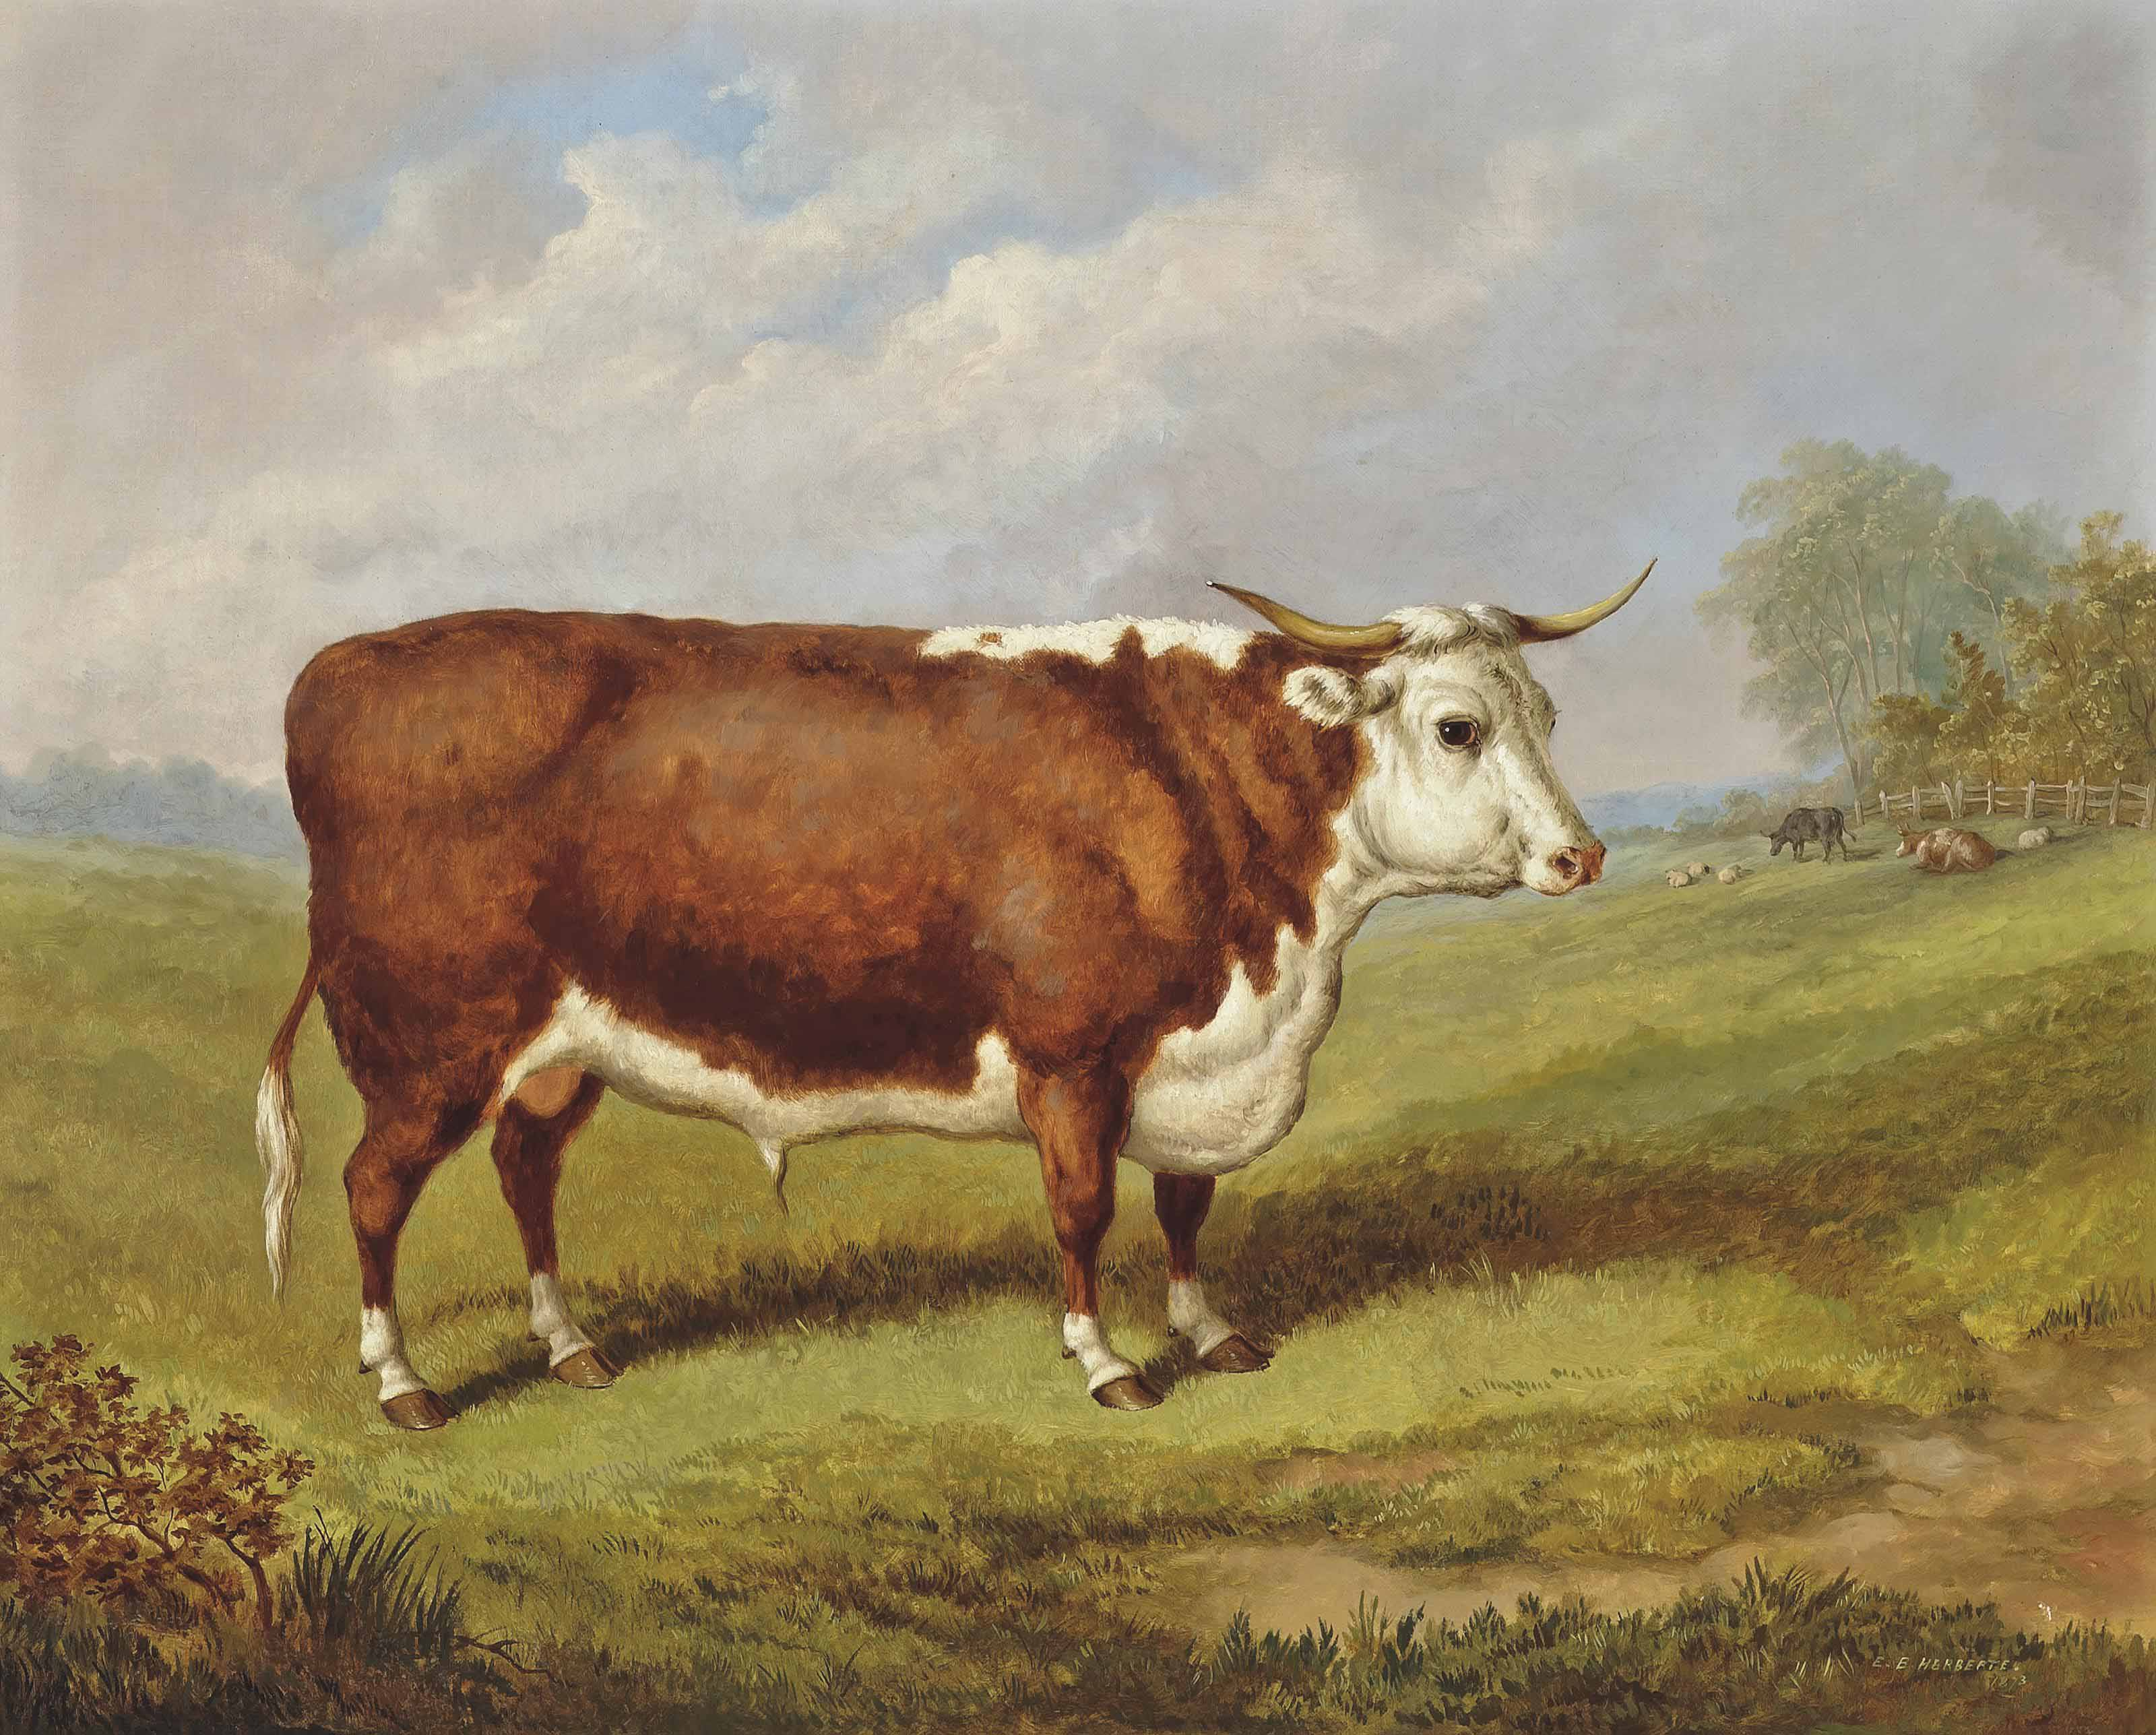 The prize bull